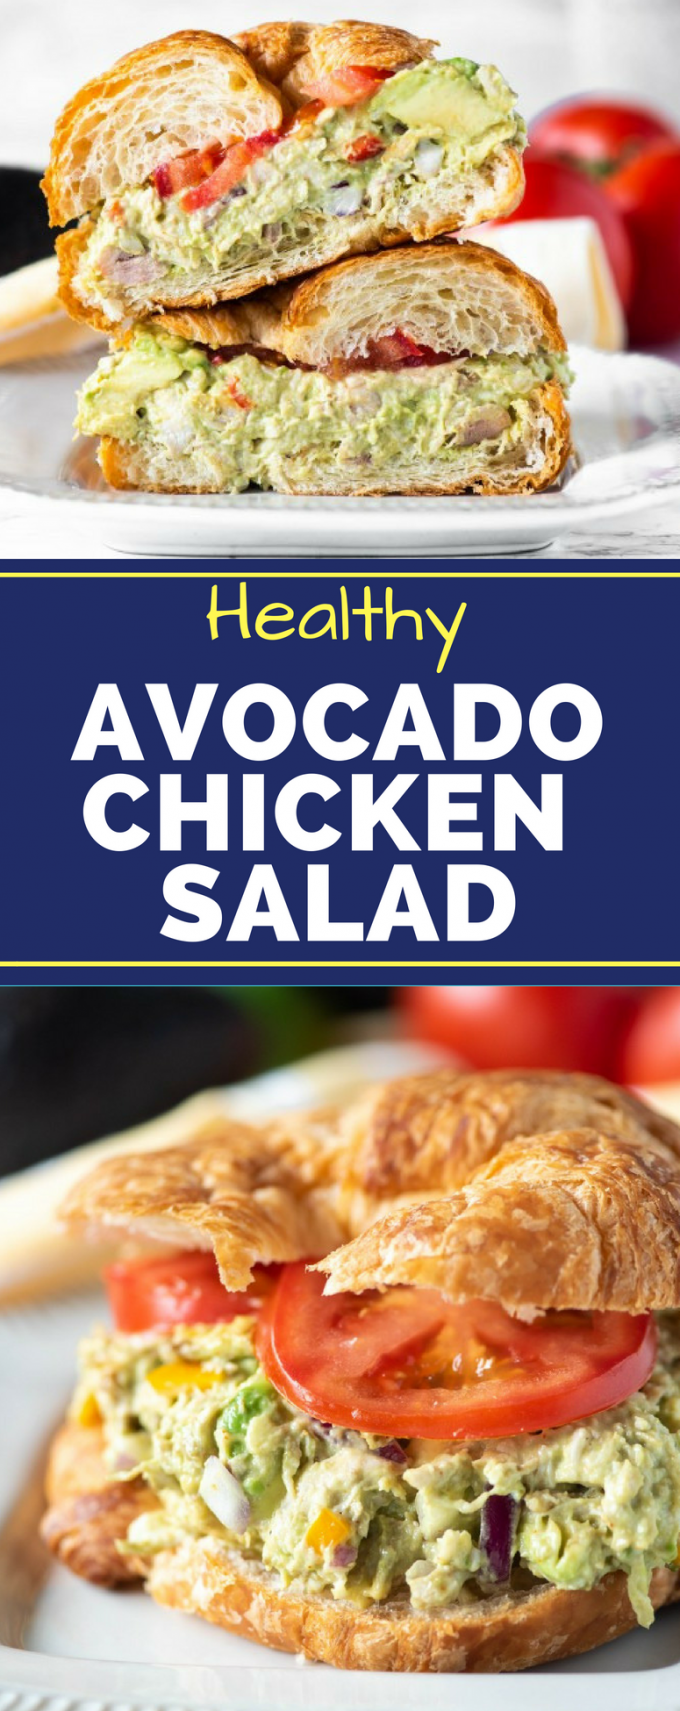 This easy, Healthy Avocado Chicken Salad recipe is the best! Rather than using no mayo, it uses avocado to replace half of it for an ultra creamy texture. You could even put it inside a lettuce wrap for a low carb option! #avocadochickensalad #healthychickensaladrecipes #healthyrecipes #gogogogourmet via @gogogogourmet